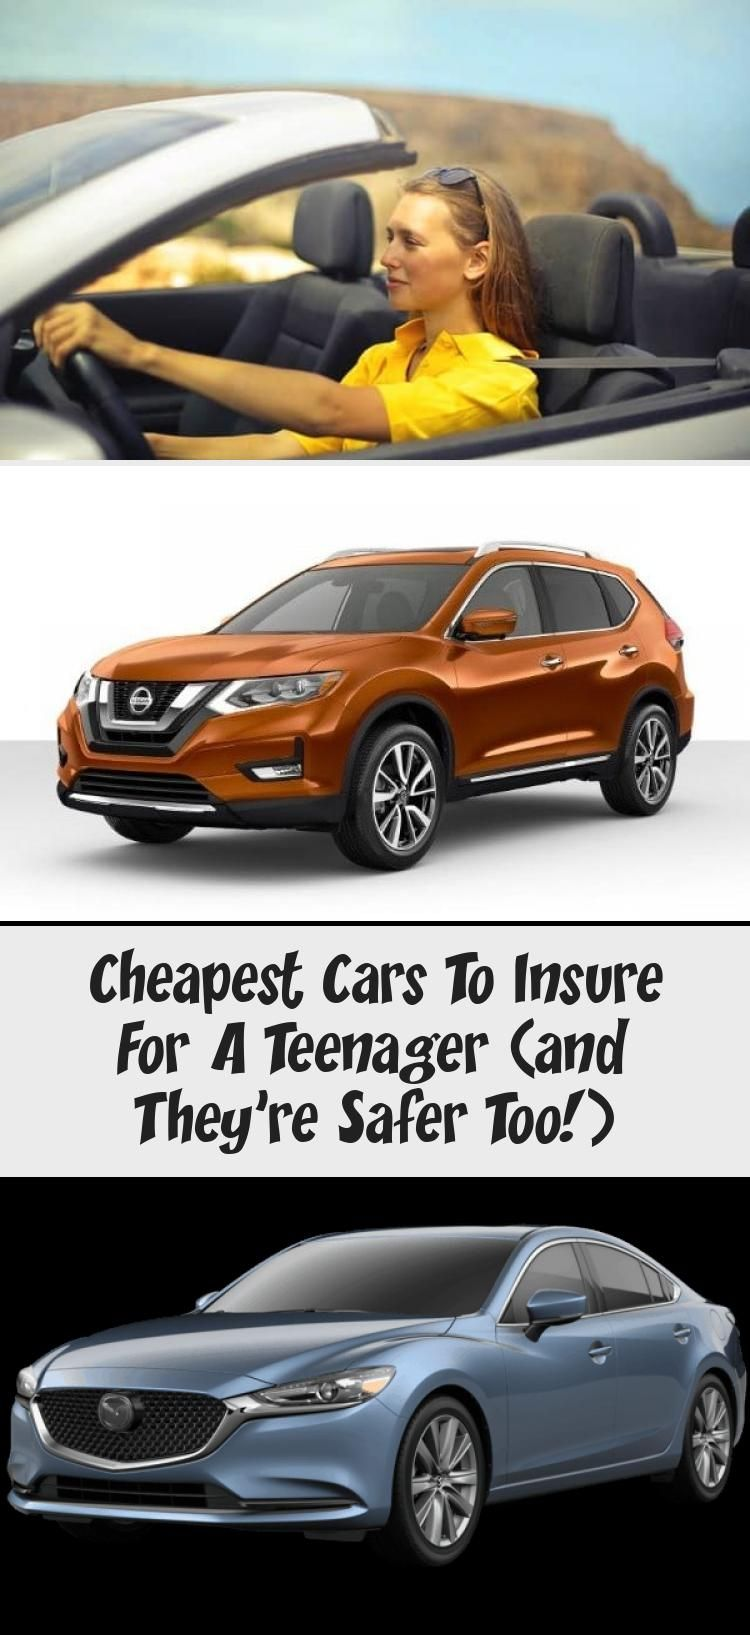 Cheapest Cars To Insure For A Teenager And They Re Safer Too Cheap Cars Toyota Prius Car